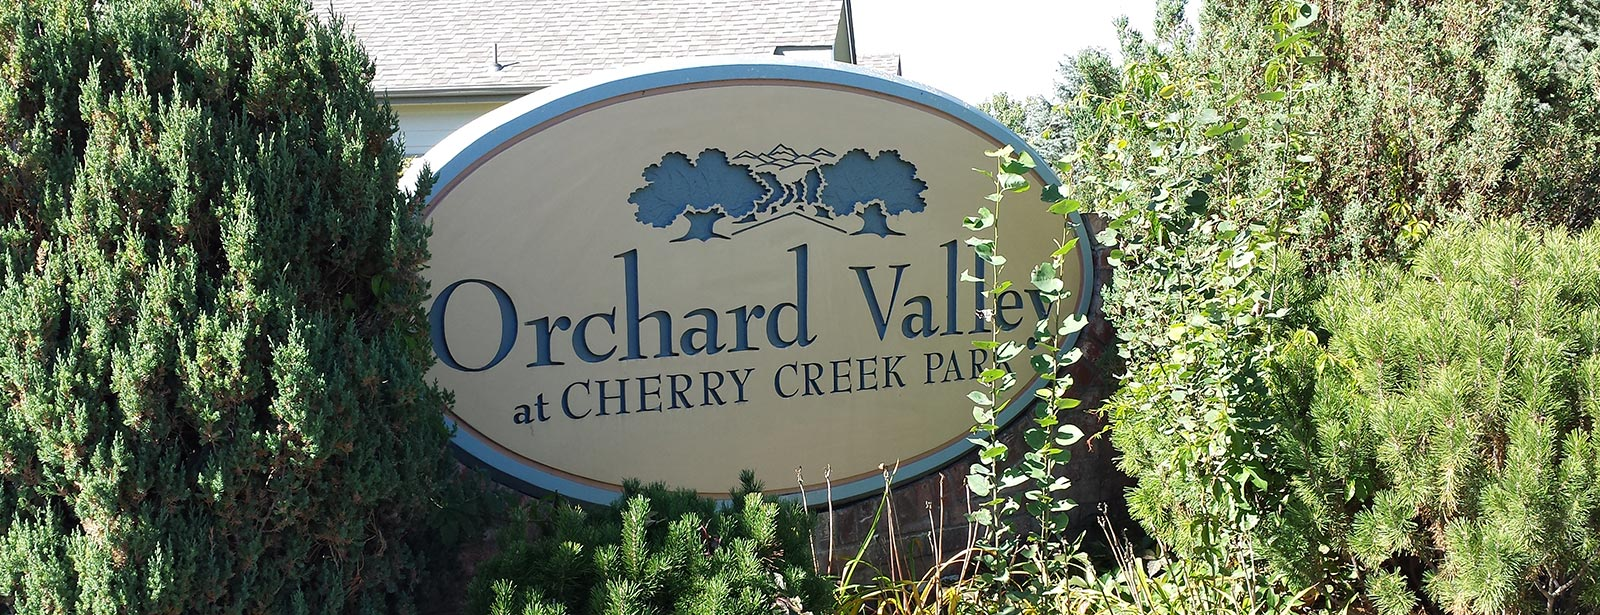 Orchard Valley at Cherry Creek Park